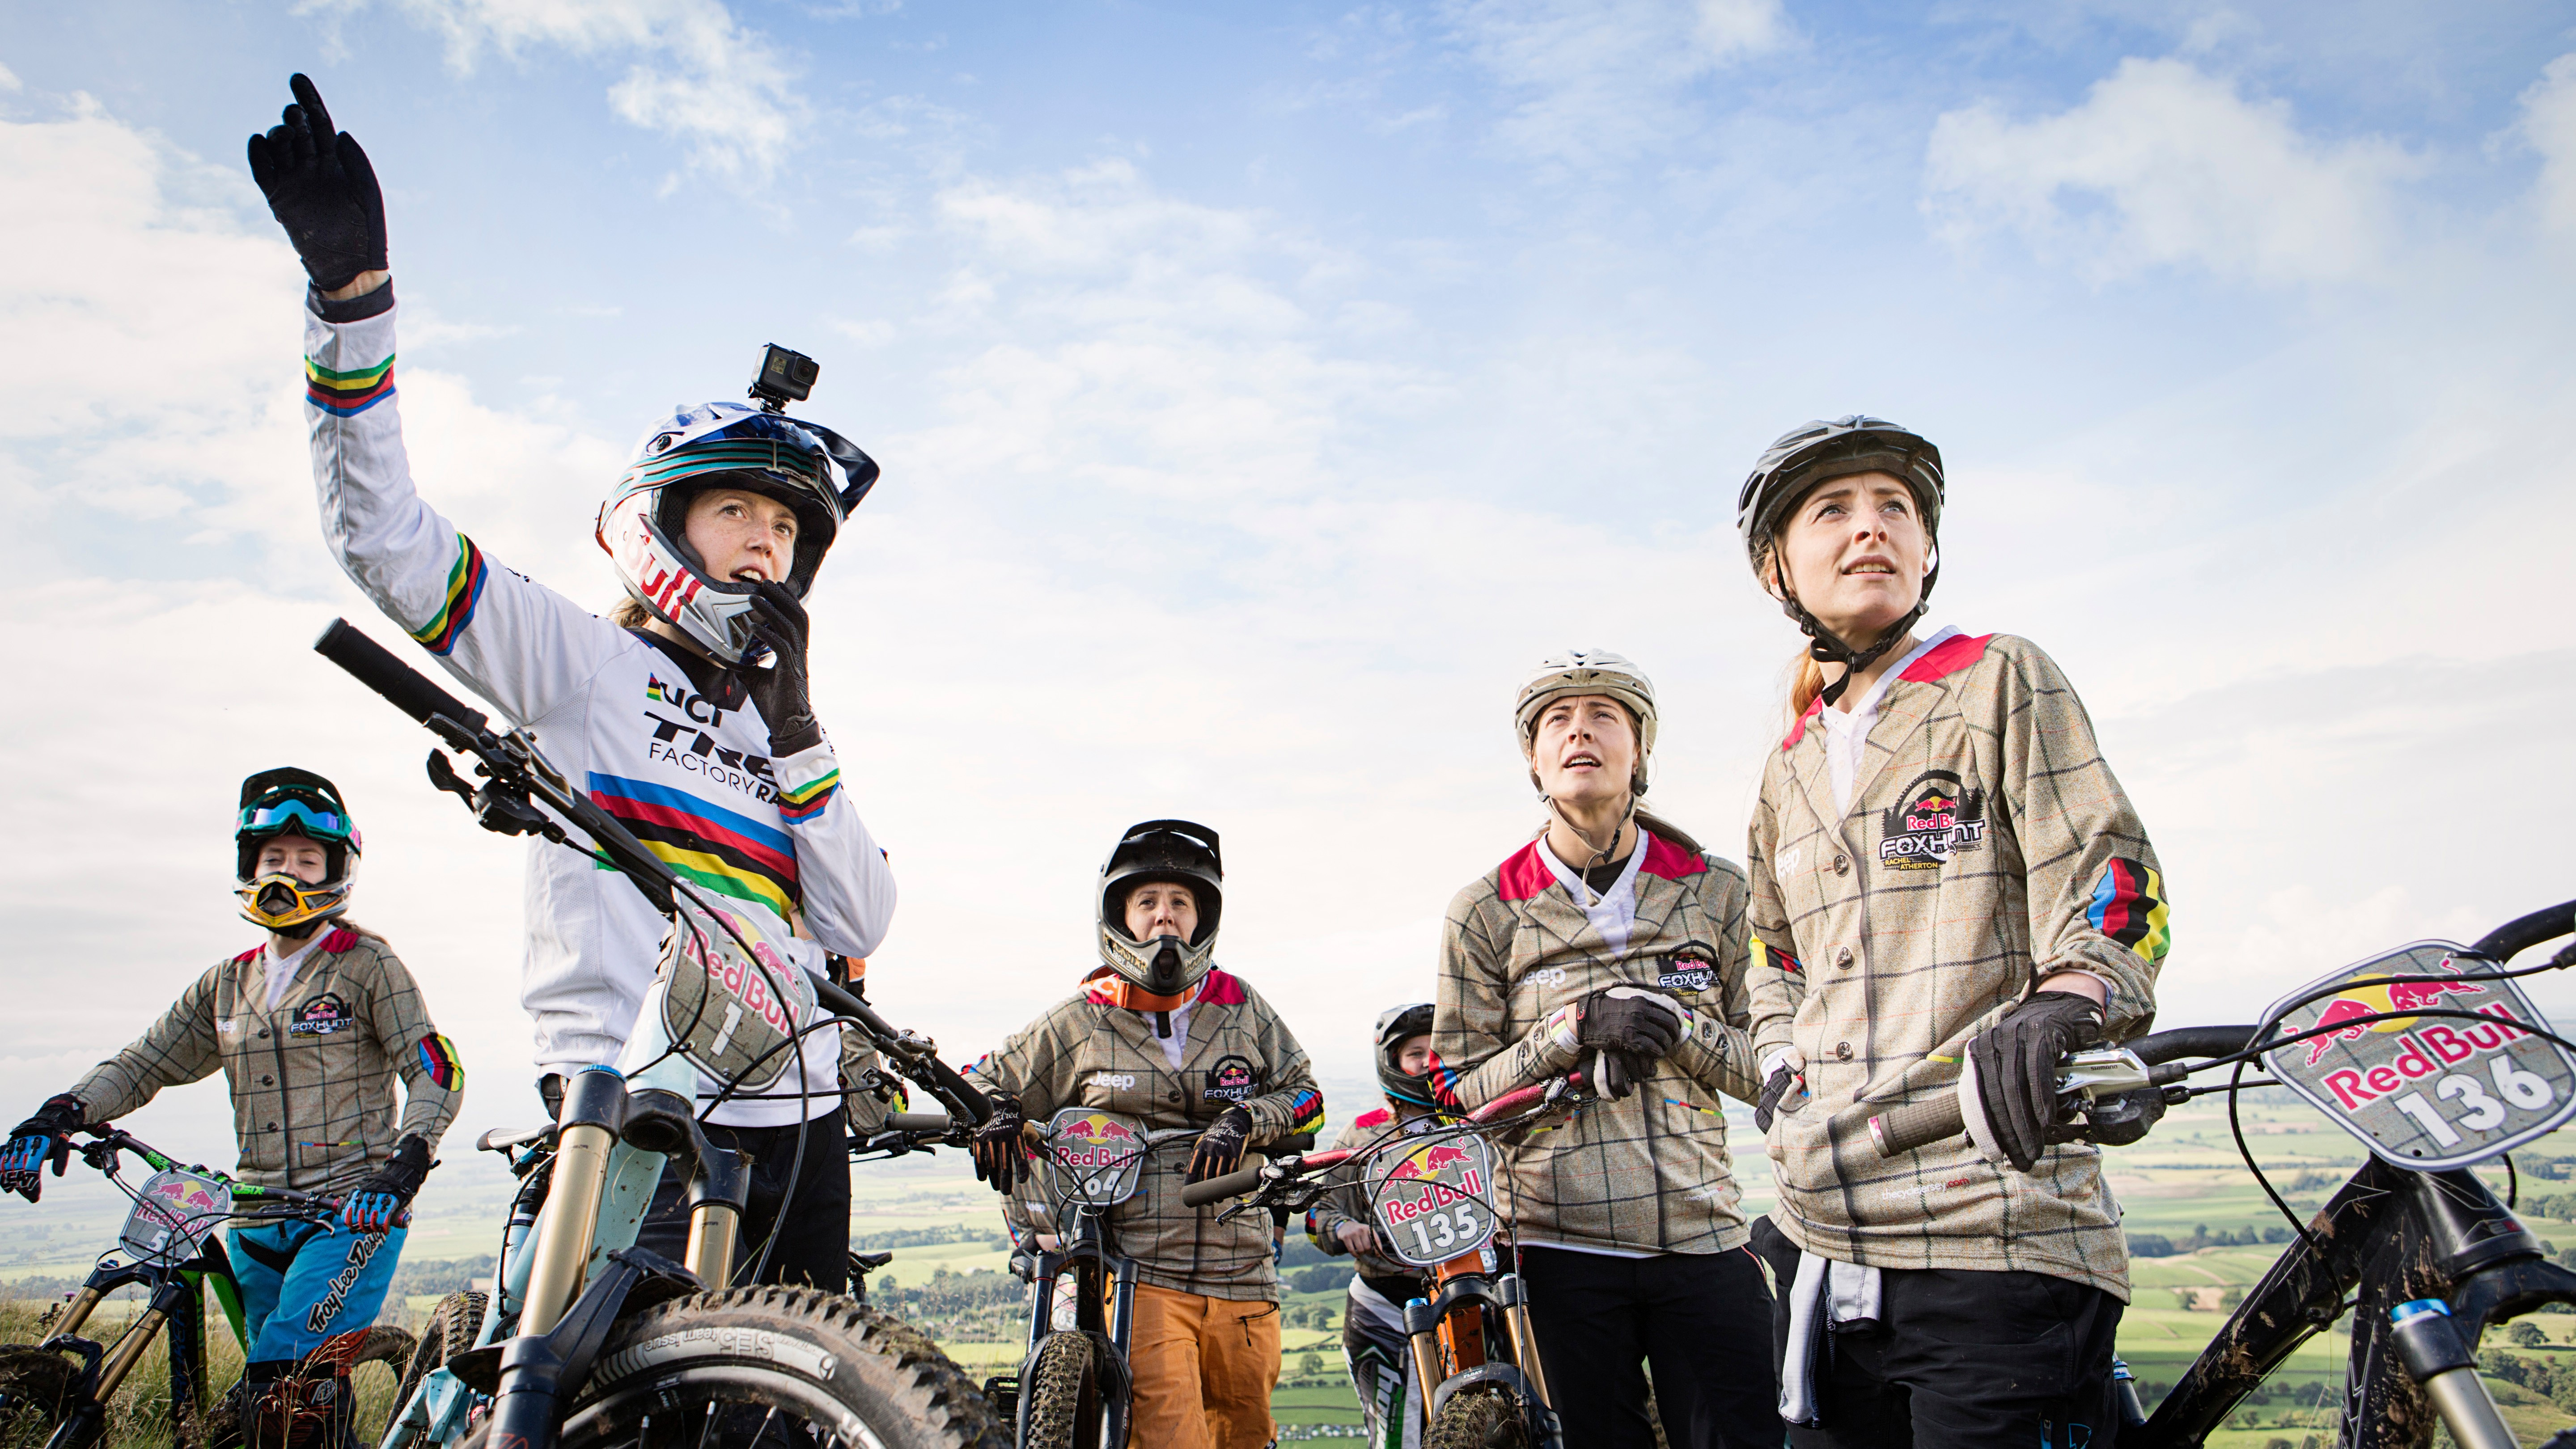 The Red Bull Foxhunt gives many women their first taste of racing in a welcoming and fun atmosphere